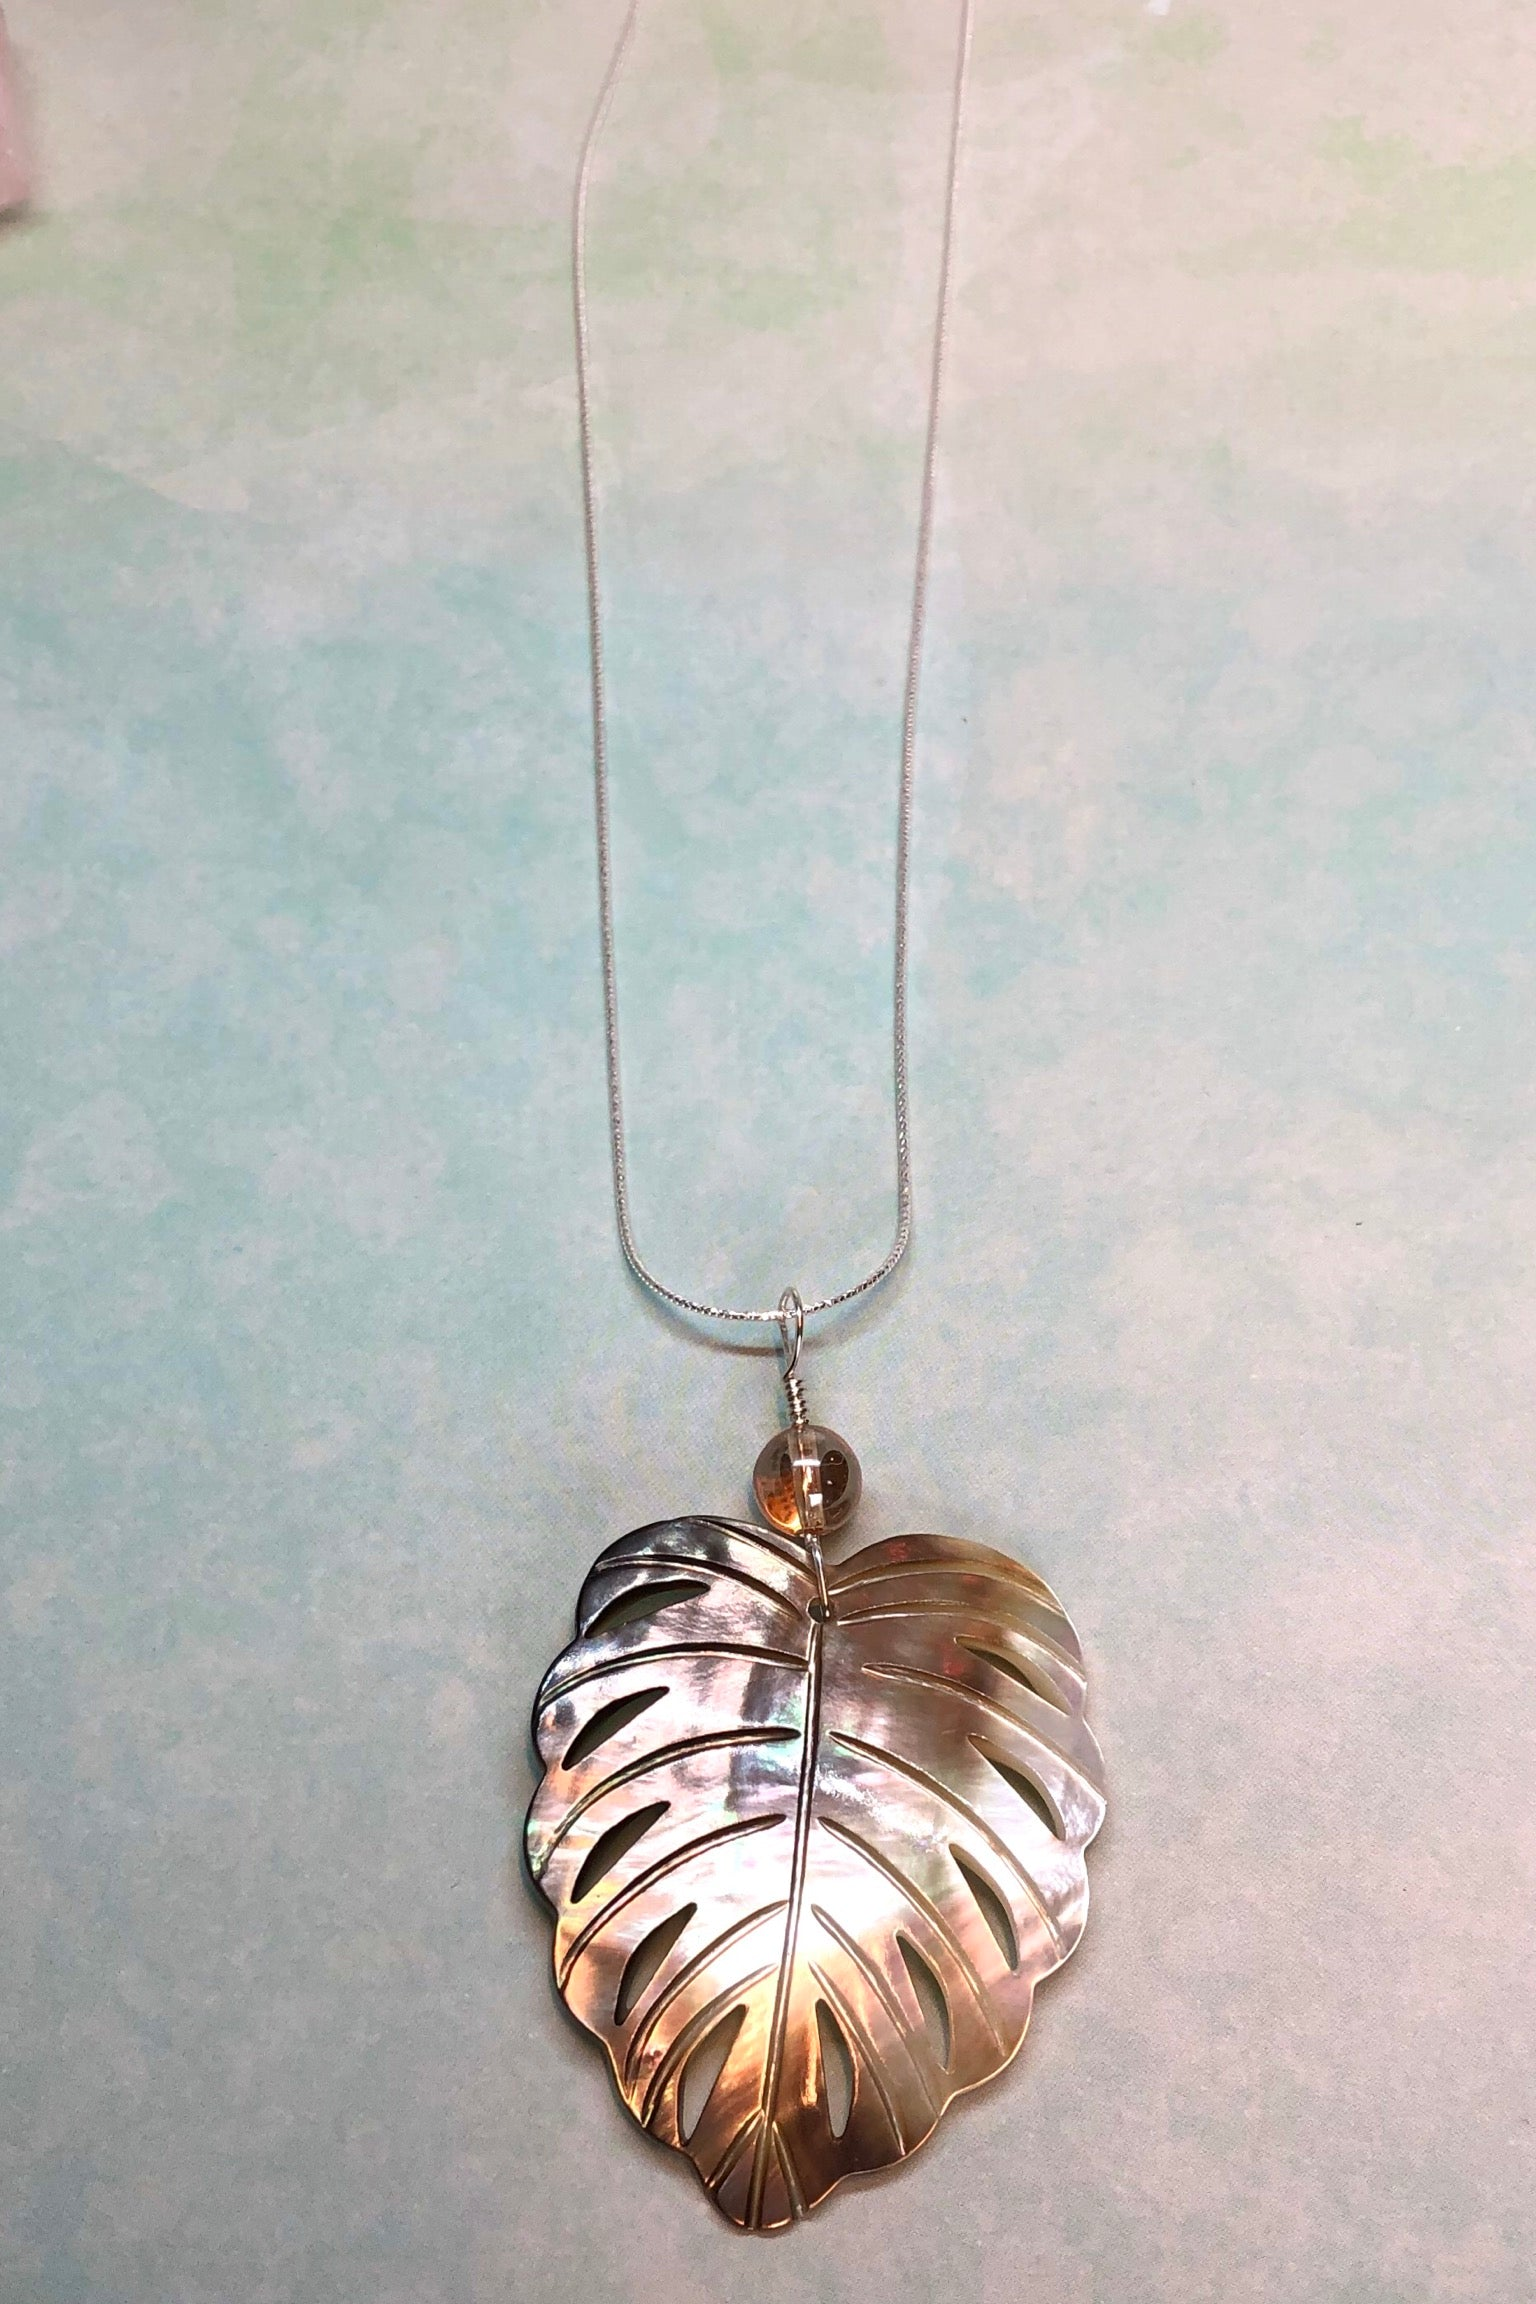 The gorgeous leaf pendant in gold and silvery bronze Mother of Pearl has been hand cut and polished. At the top there is an iridescent crystal bead.